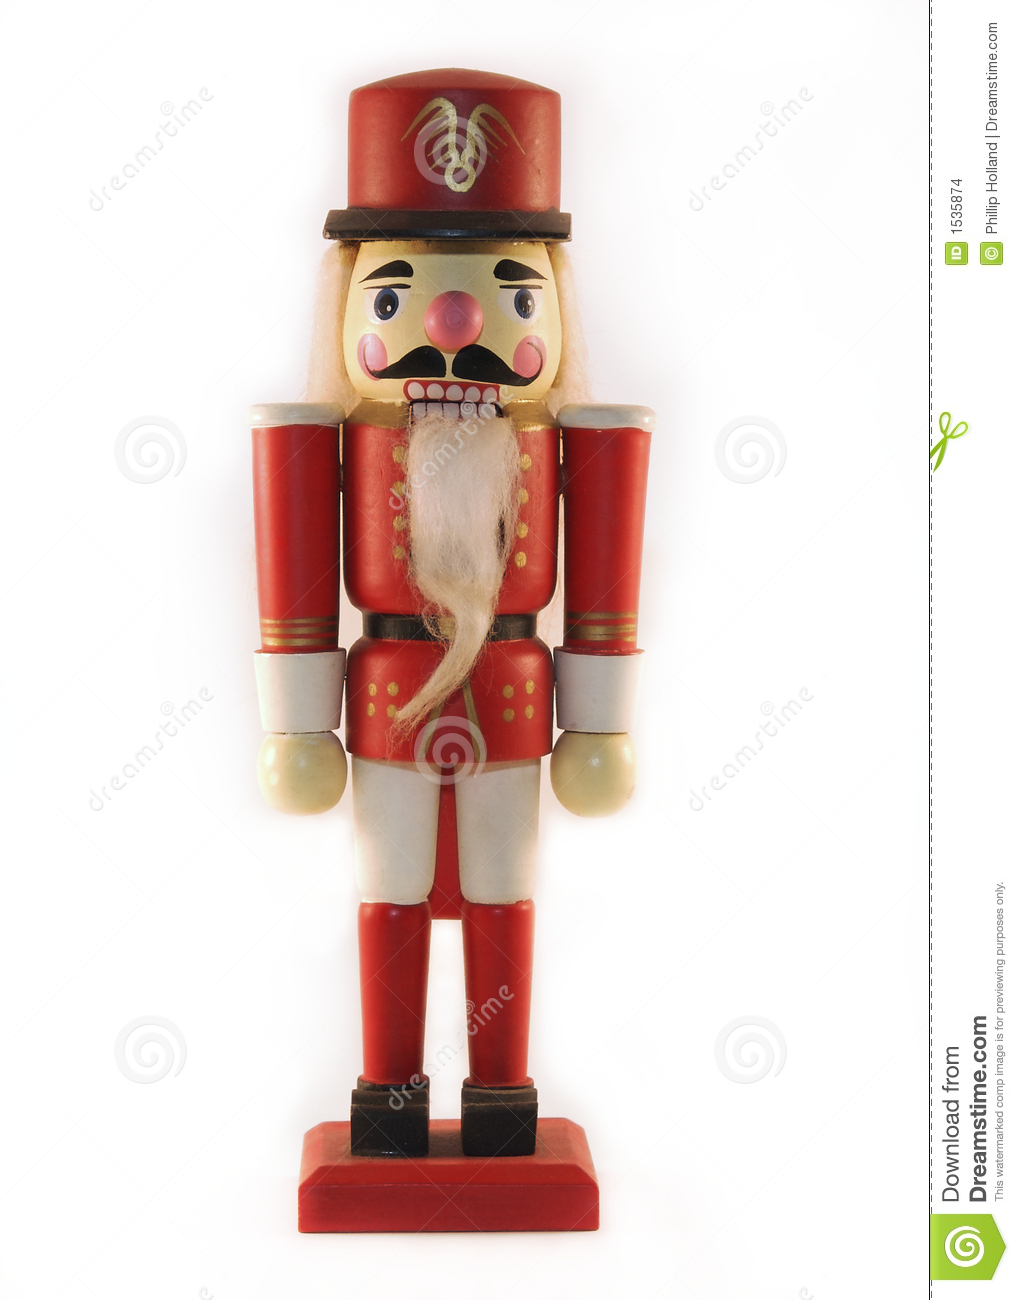 Christmas Nutcracker Stock Photo Image Of Ornament Sword